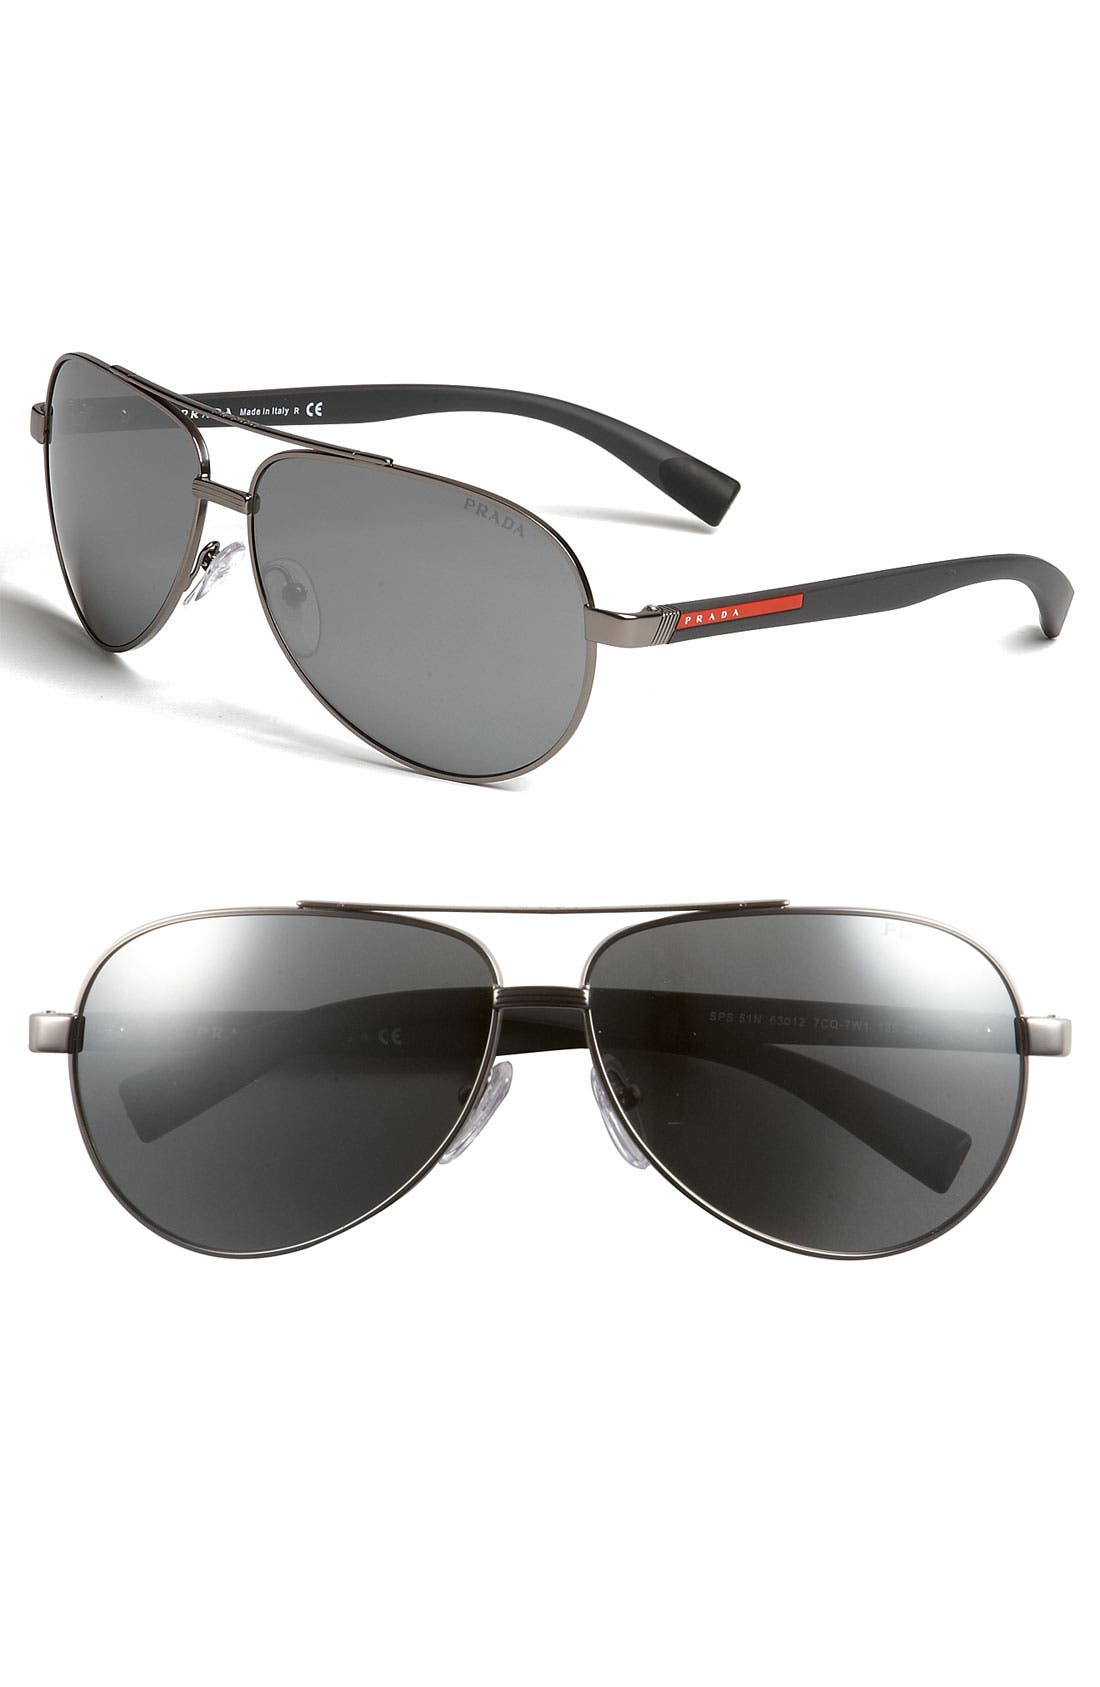 Main Image - Prada 63mm Aviator Sunglasses